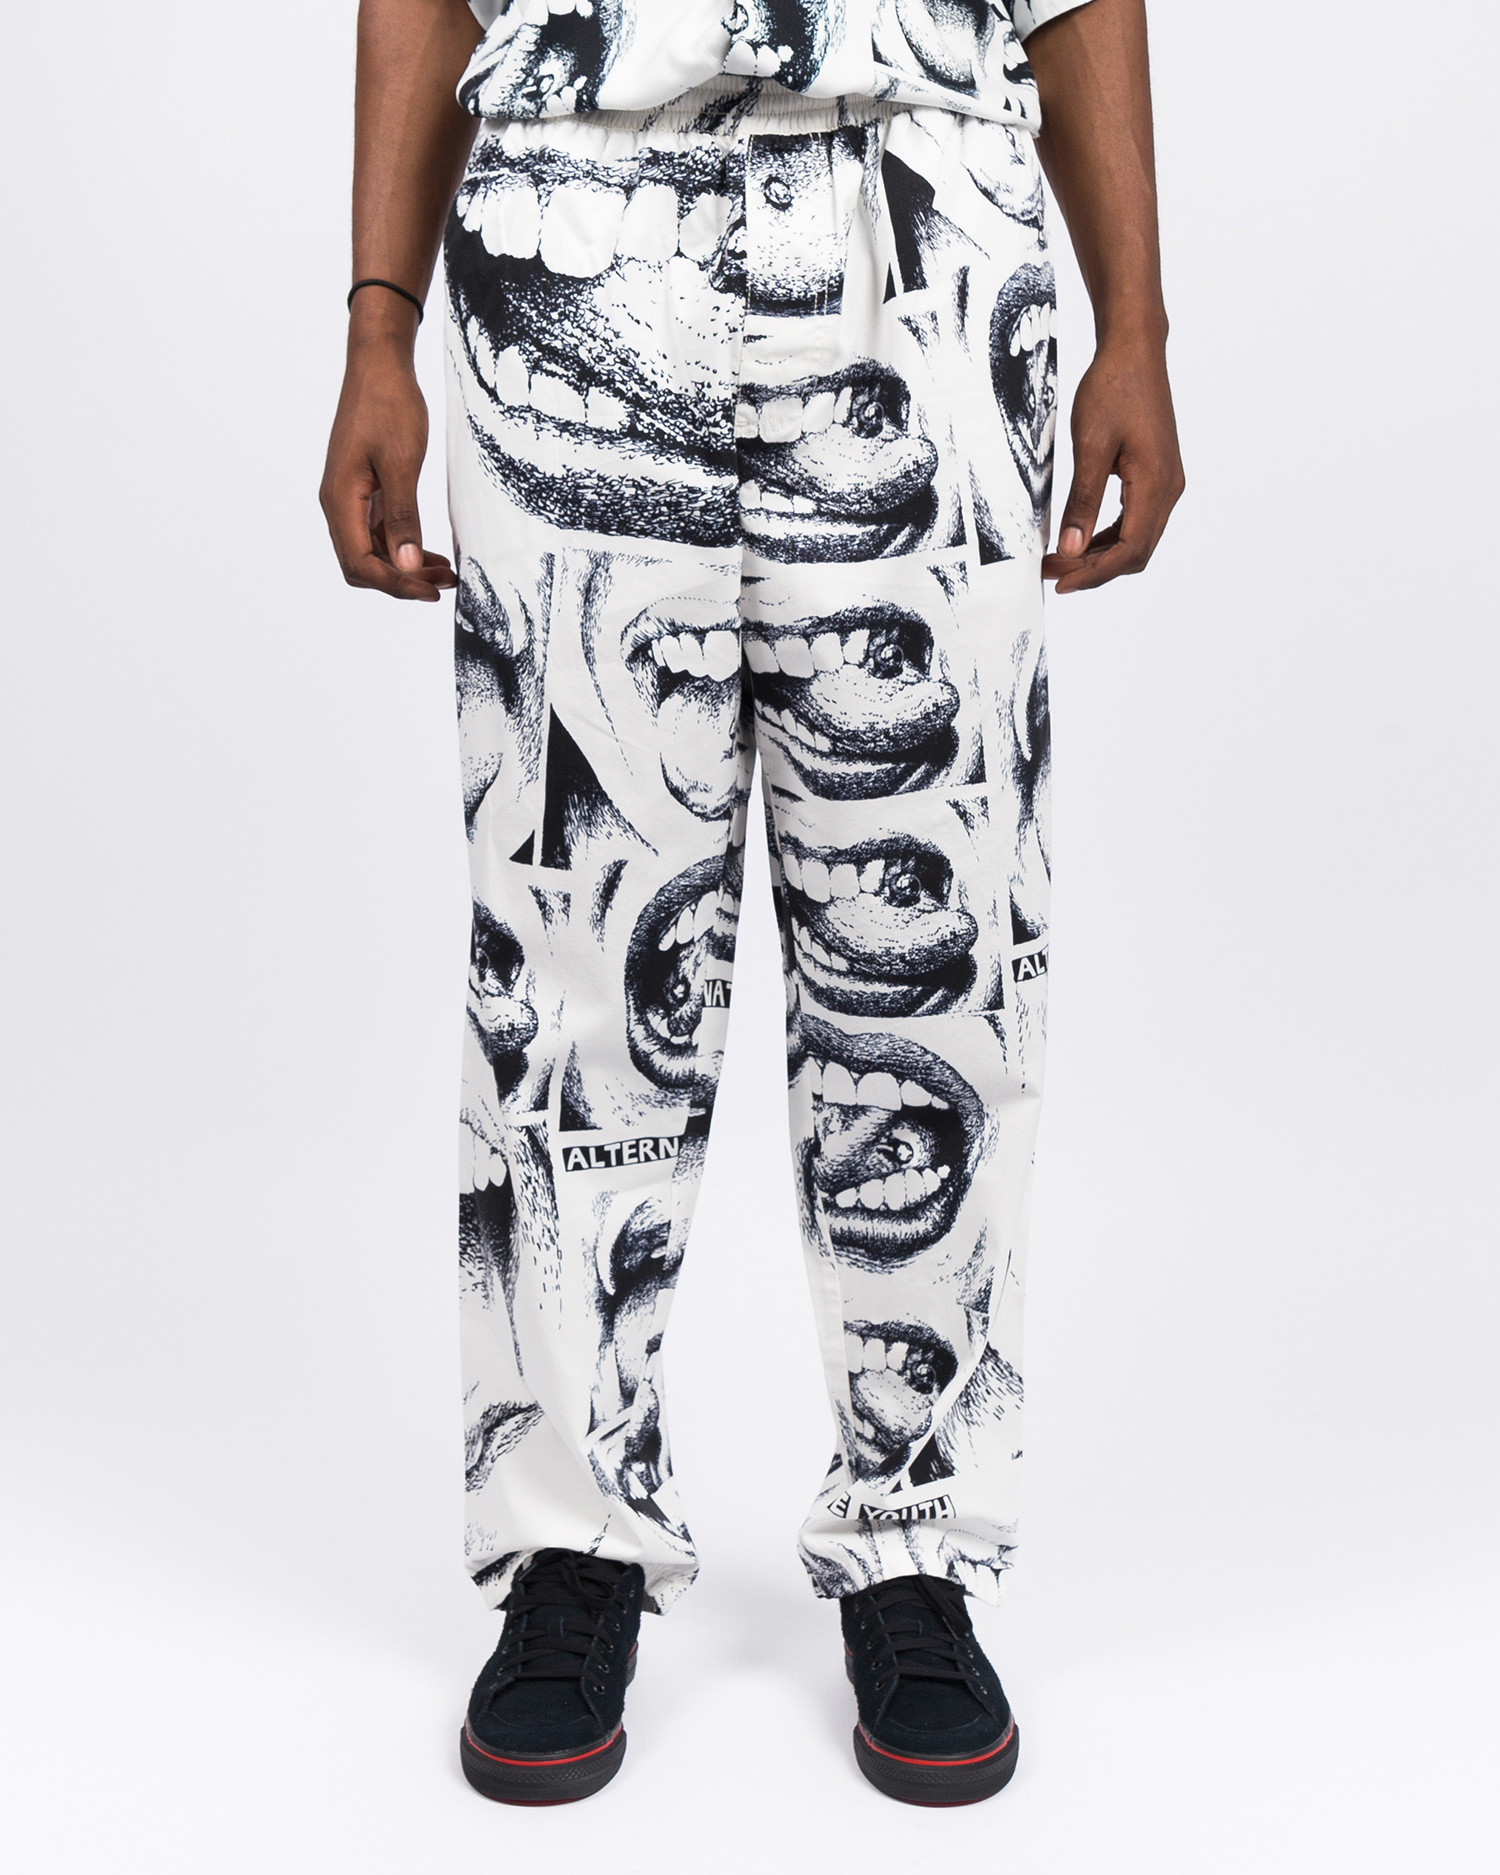 Polar X Iggy Alternative Youth Pants White